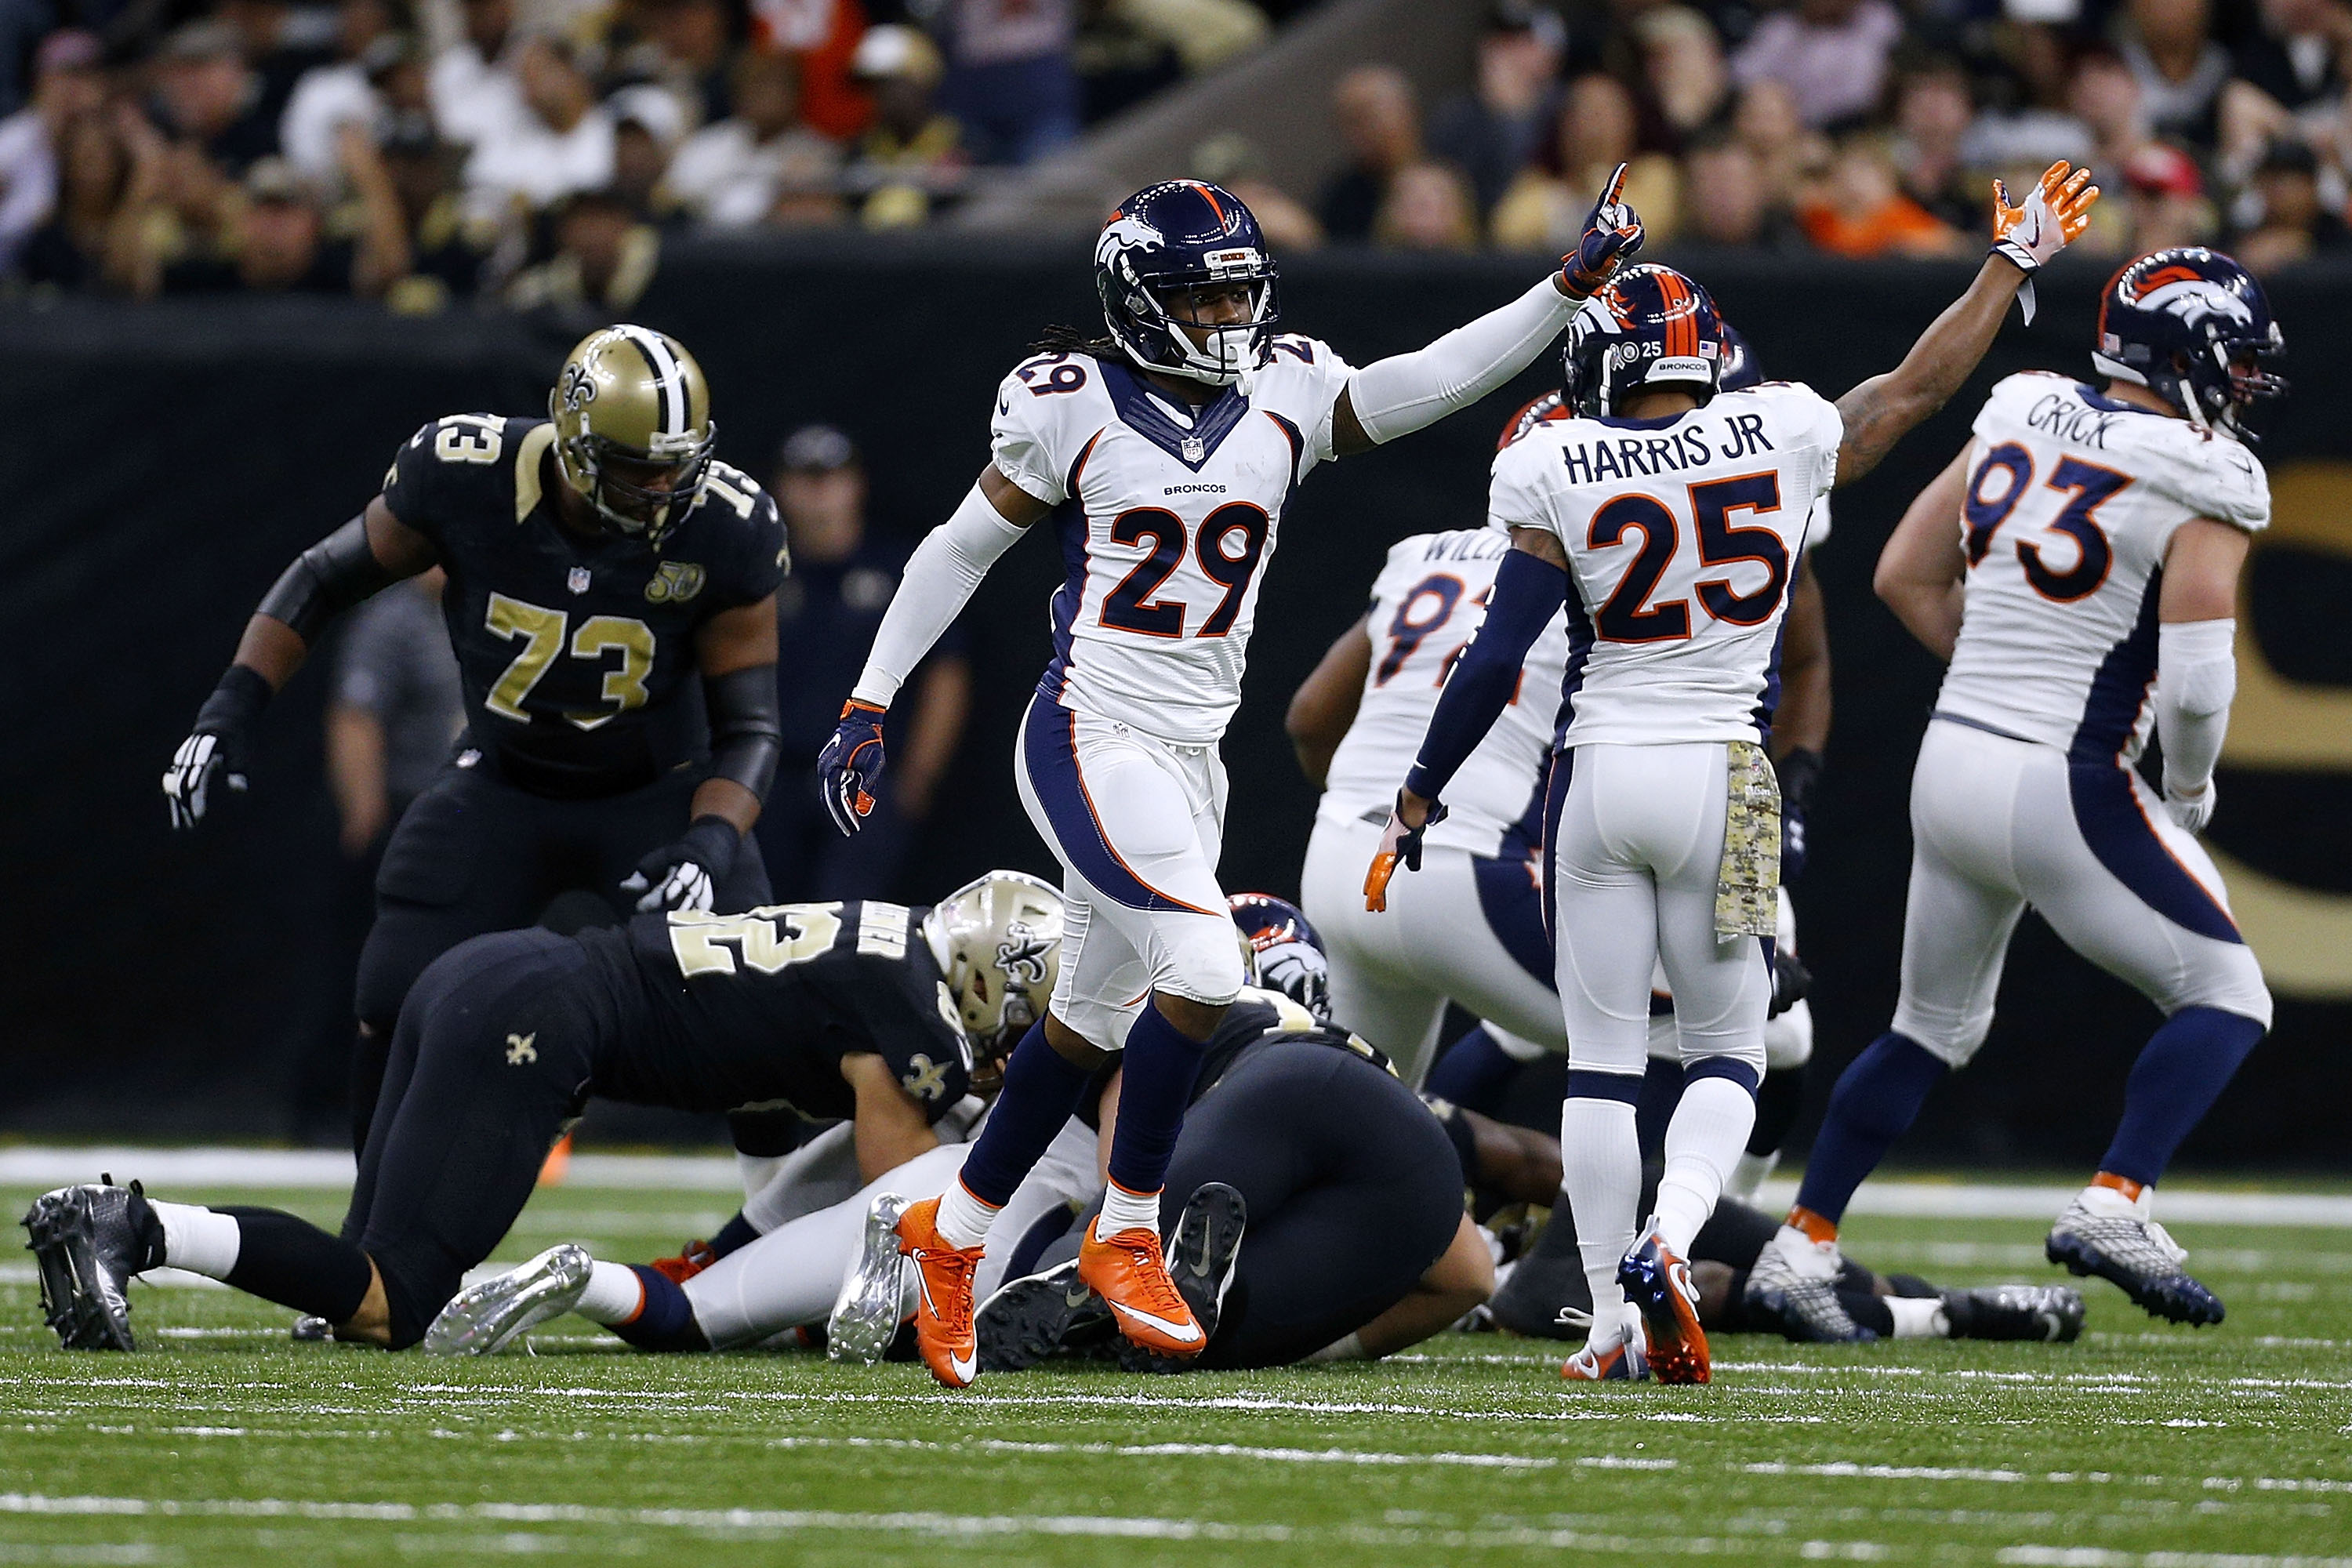 The Denver Broncos defense celebrates after recovering a fumble during the second half at New Orleans. (Getty Images)